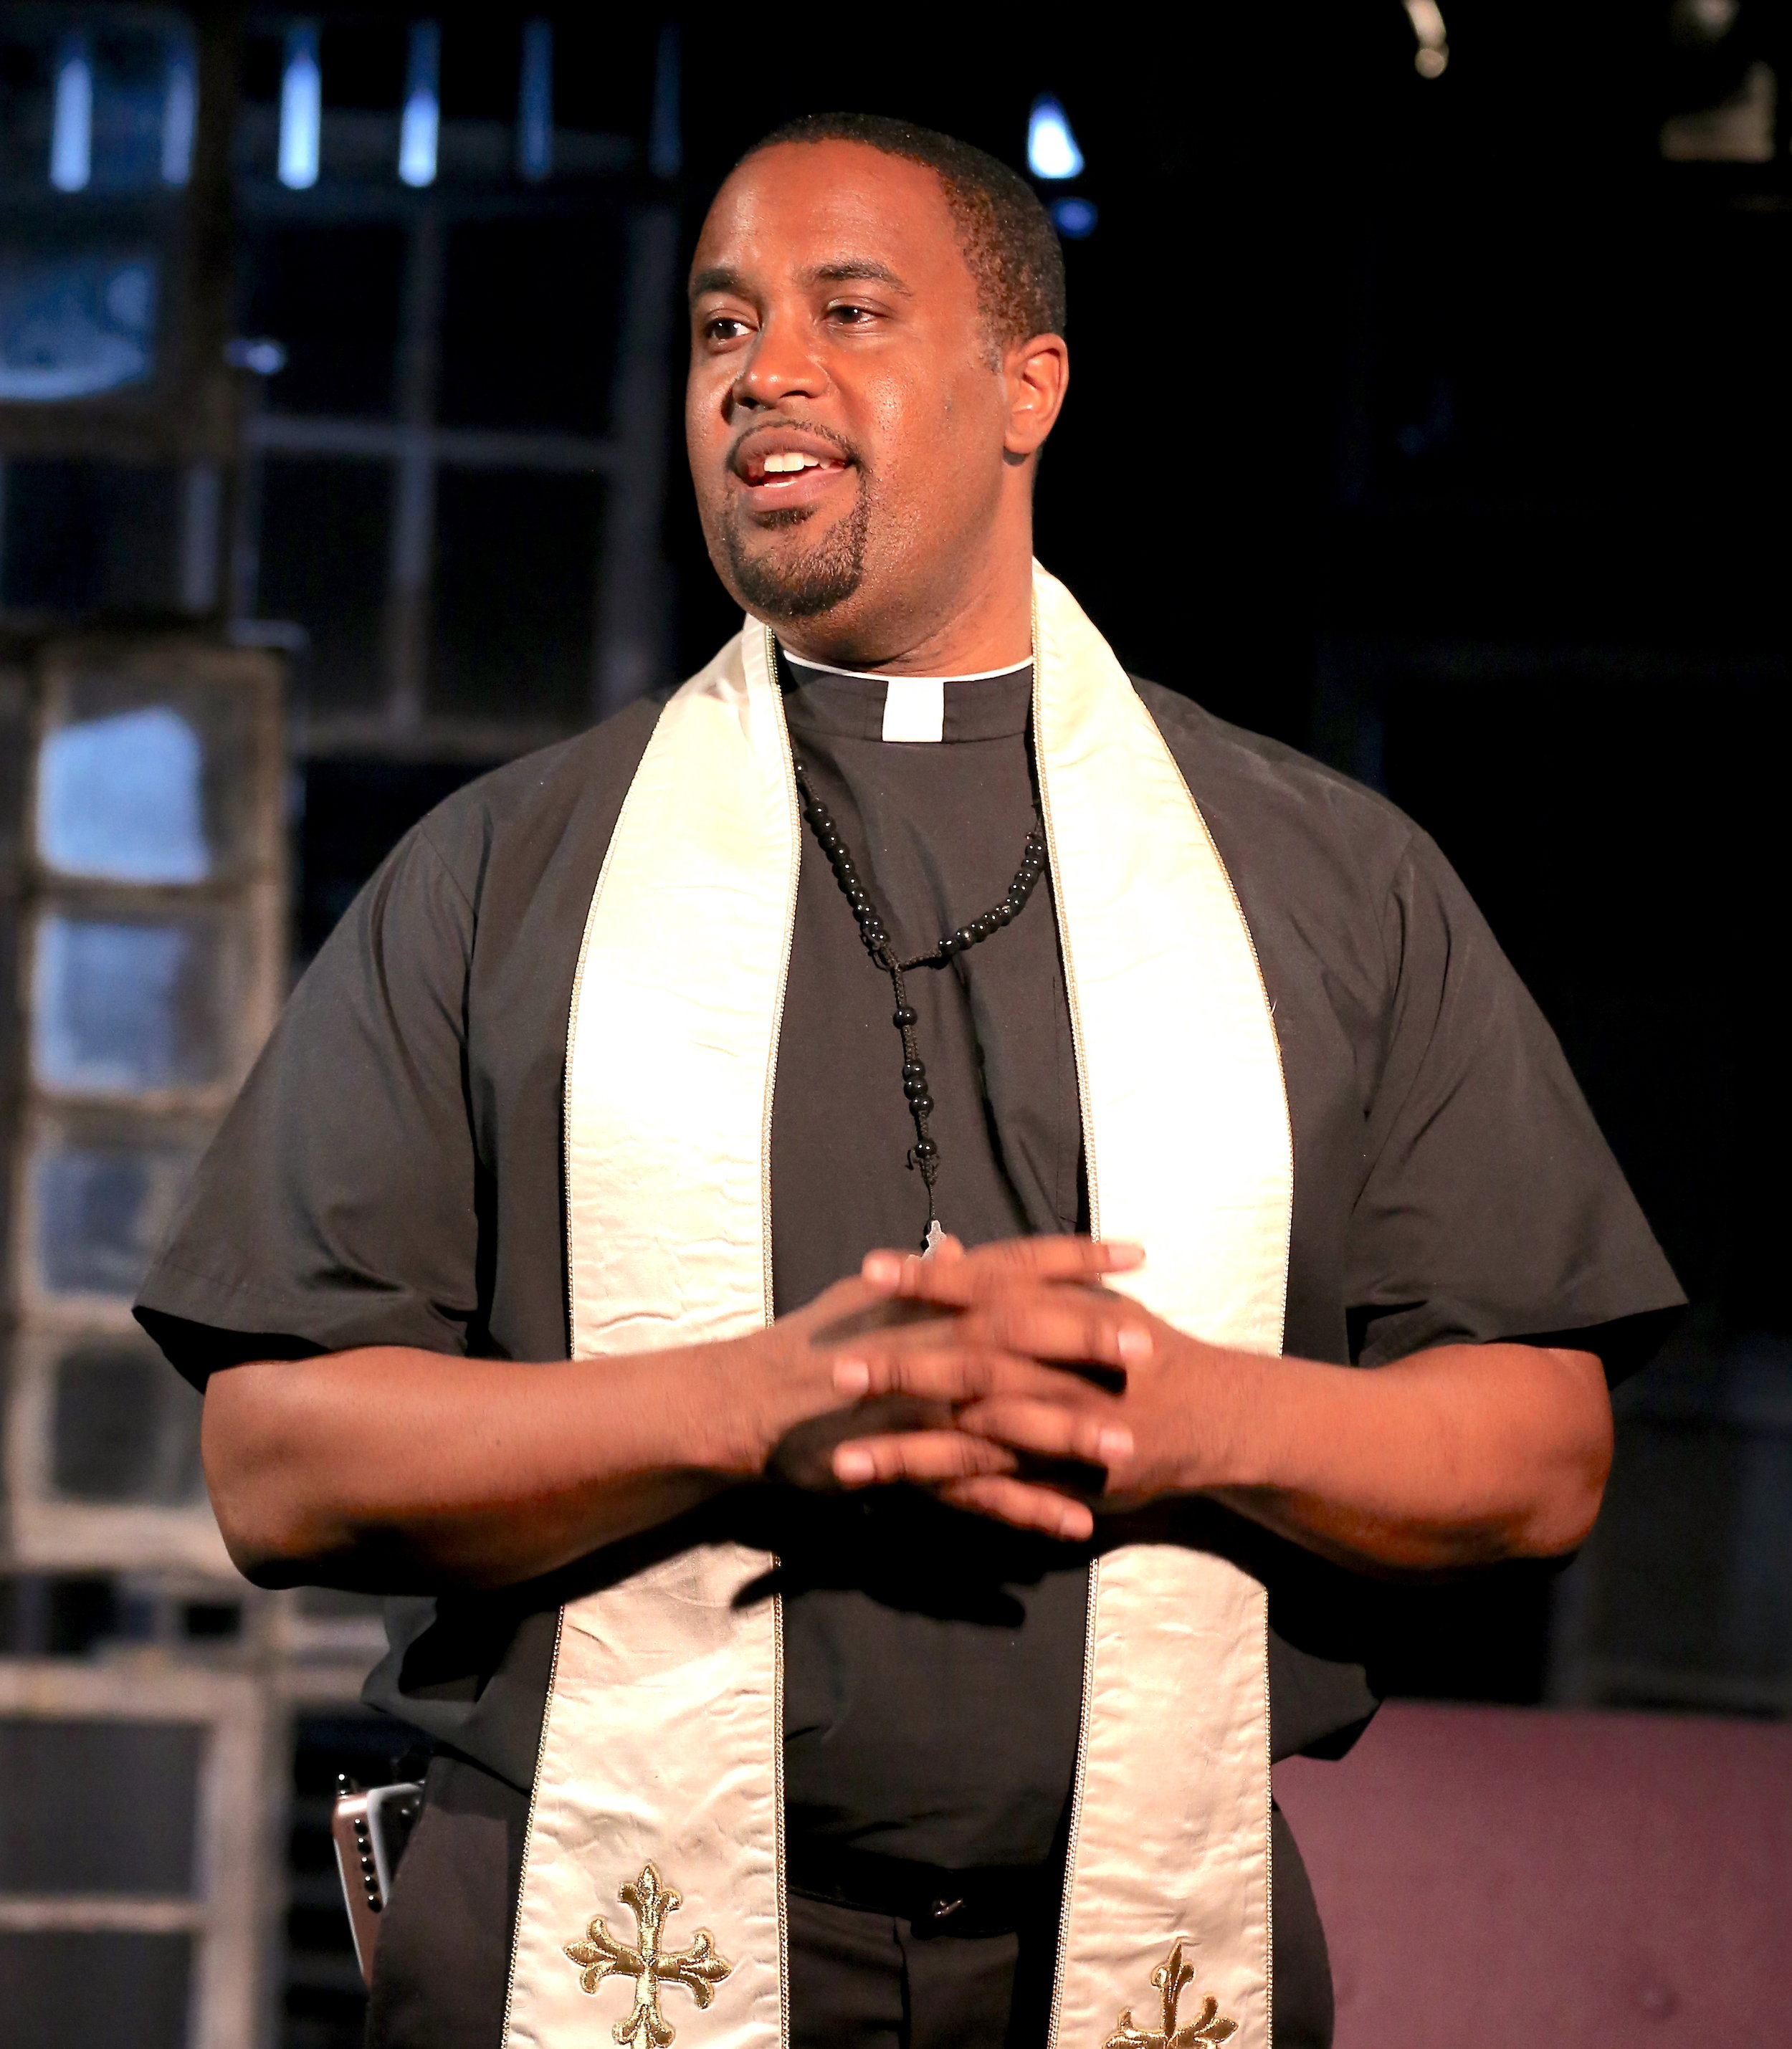 Ryan Vincent Anderson as Father Ray. Photographs by Carol Rosegg.